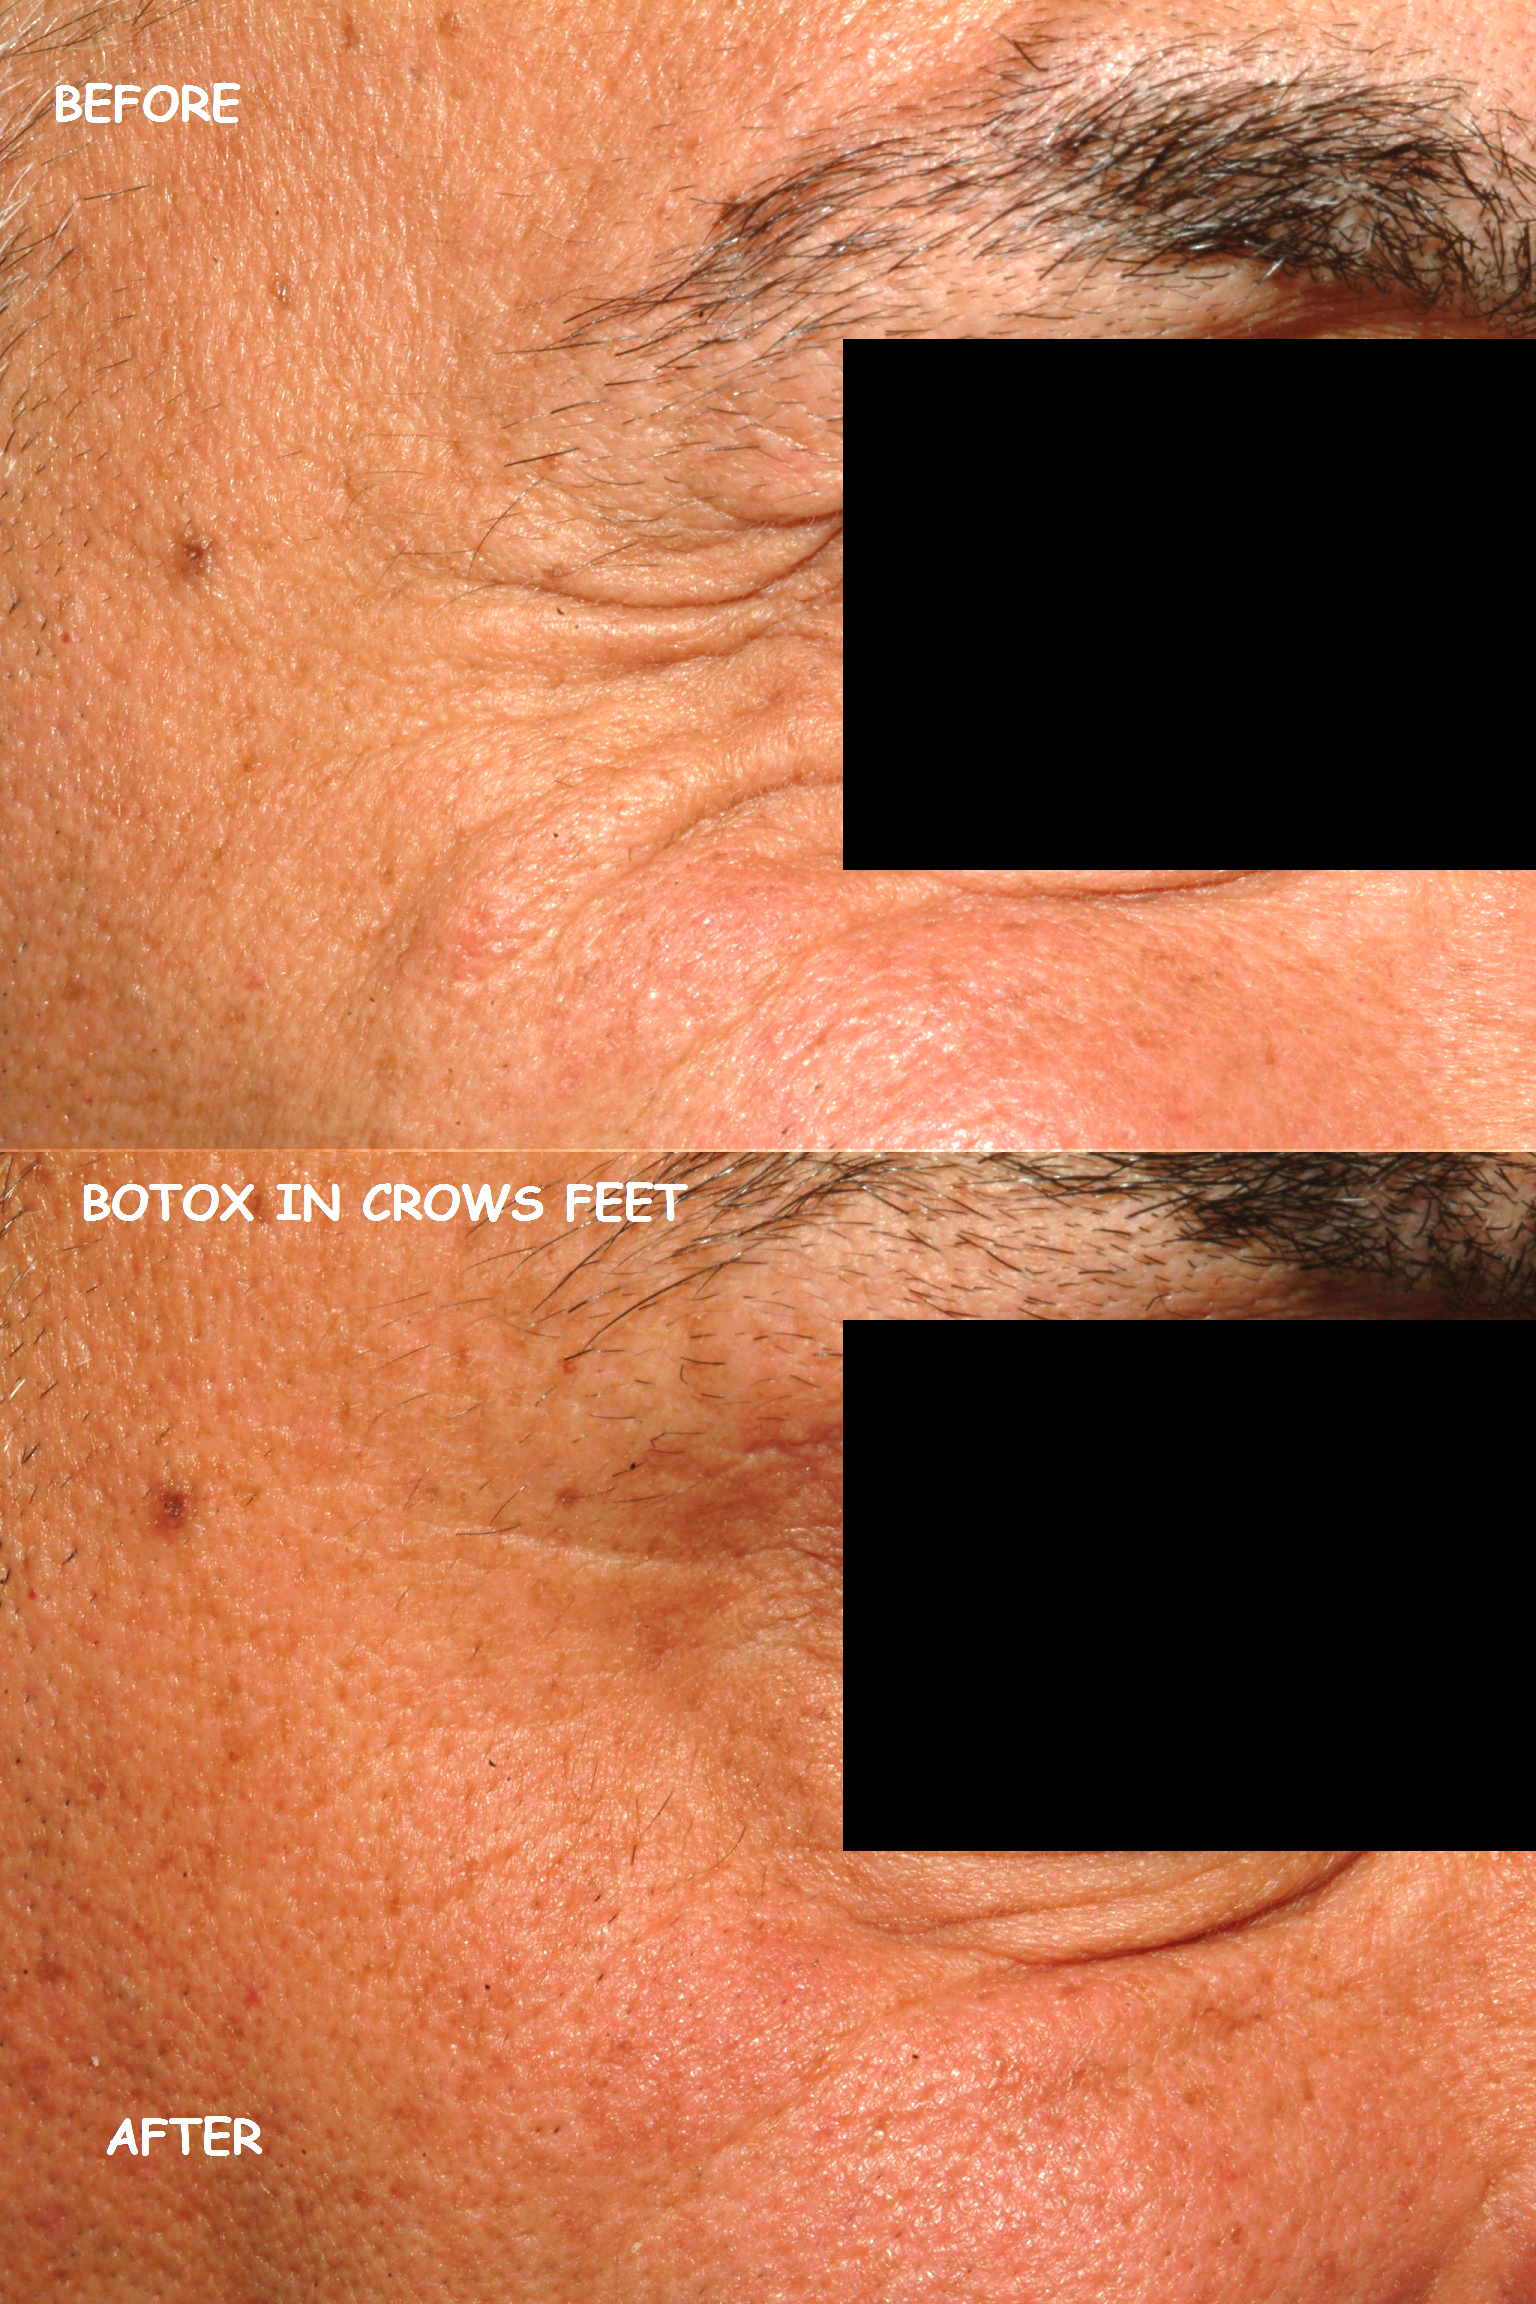 Botox19 crows feet